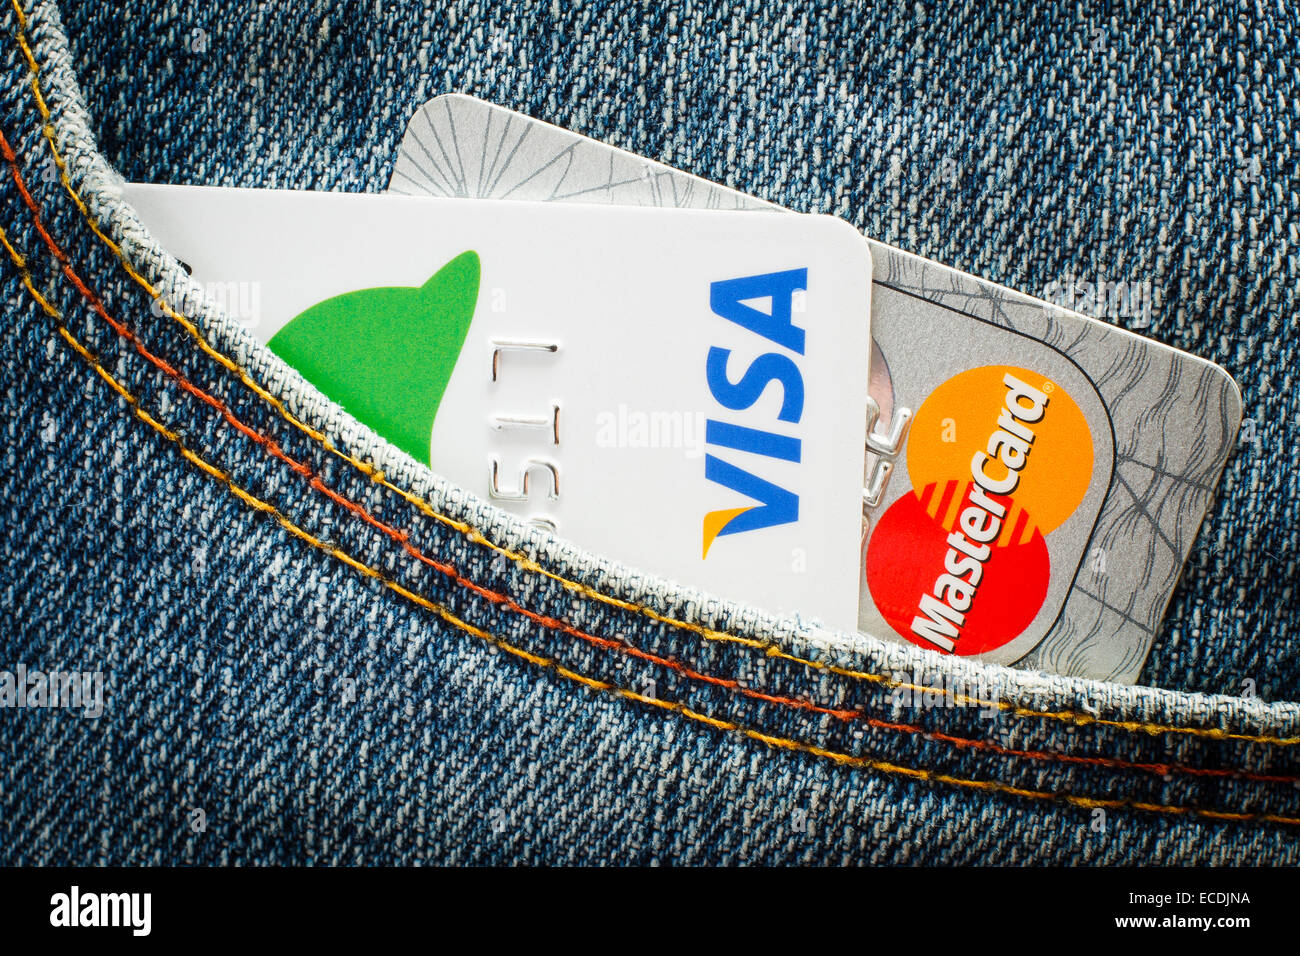 GDANSK, POLAND - 10 JULY 2014. Visa card and Mastercard card in jeans pocket. Editorial use only - Stock Image